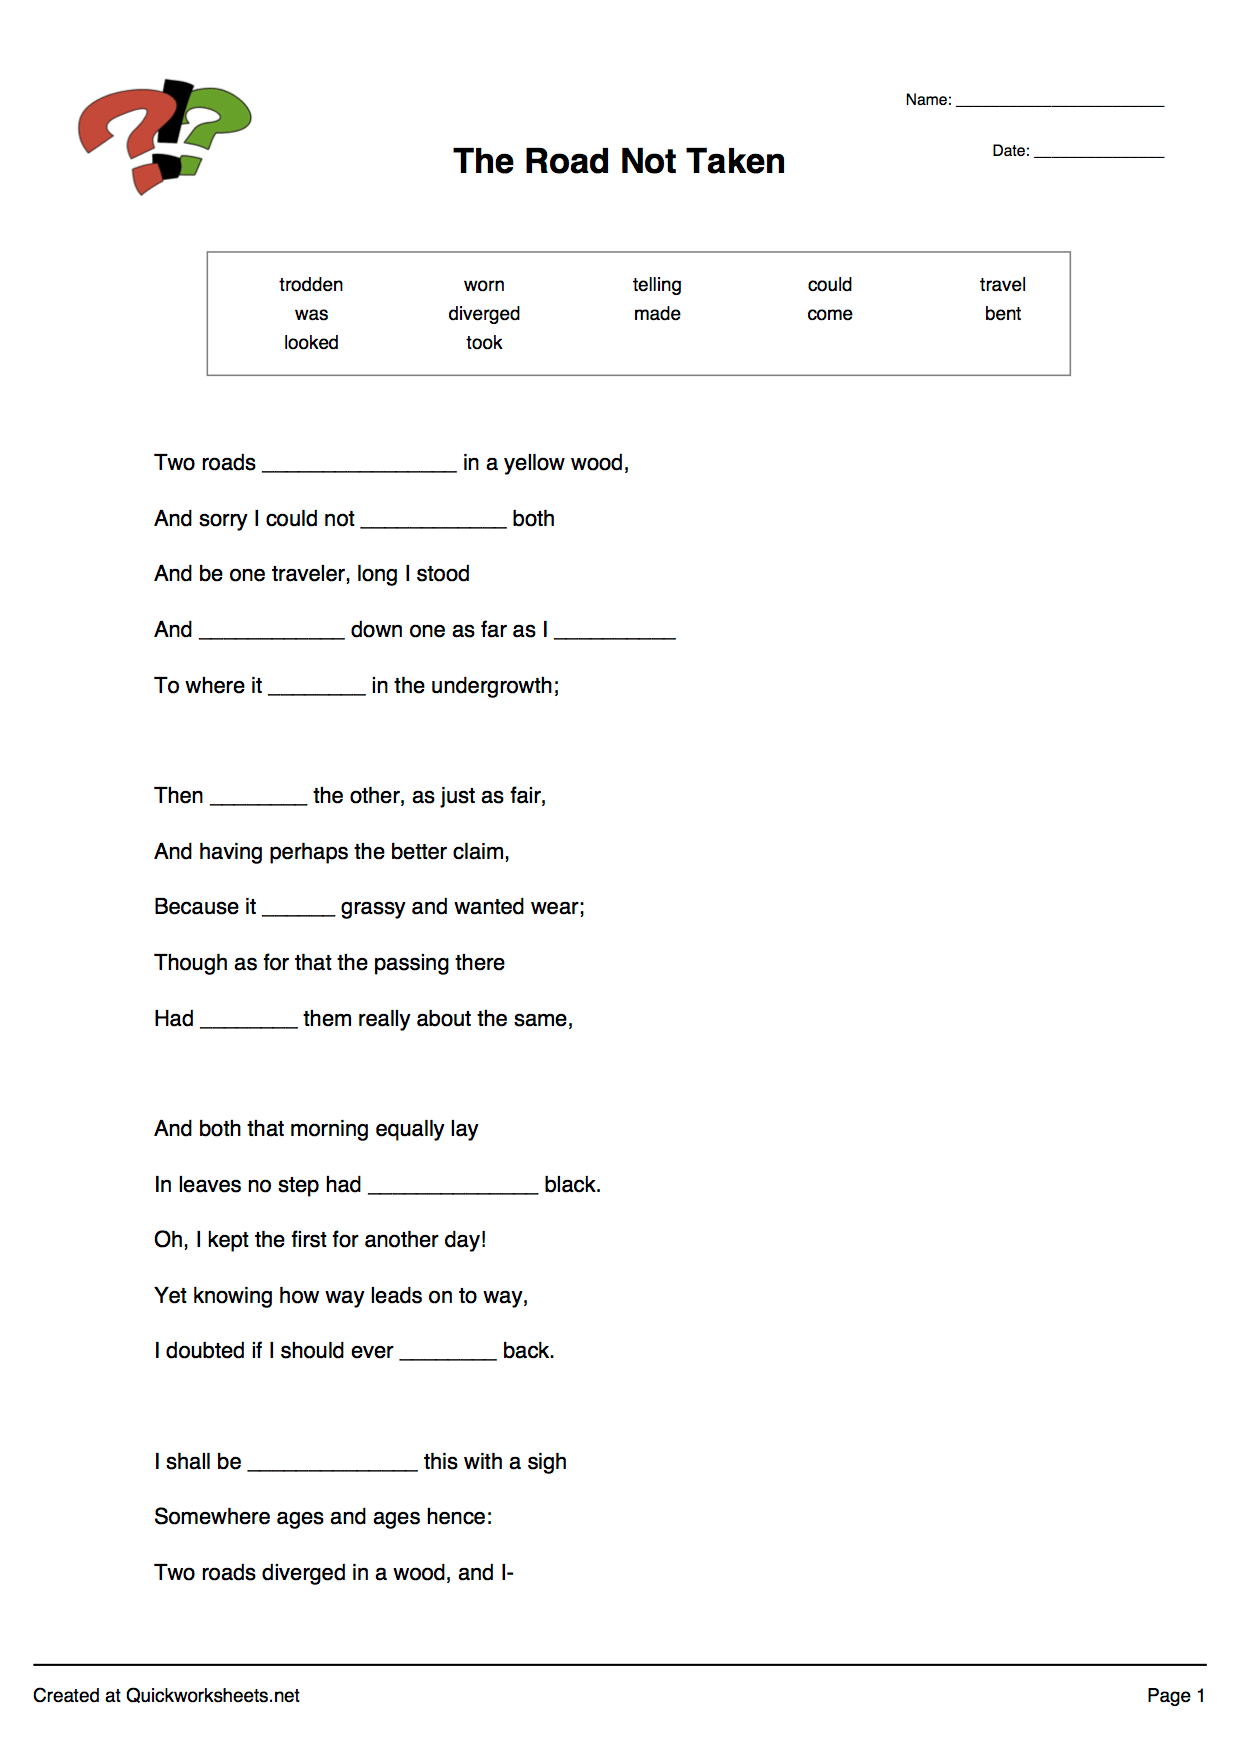 Blank Spelling Worksheet 25 Spaces